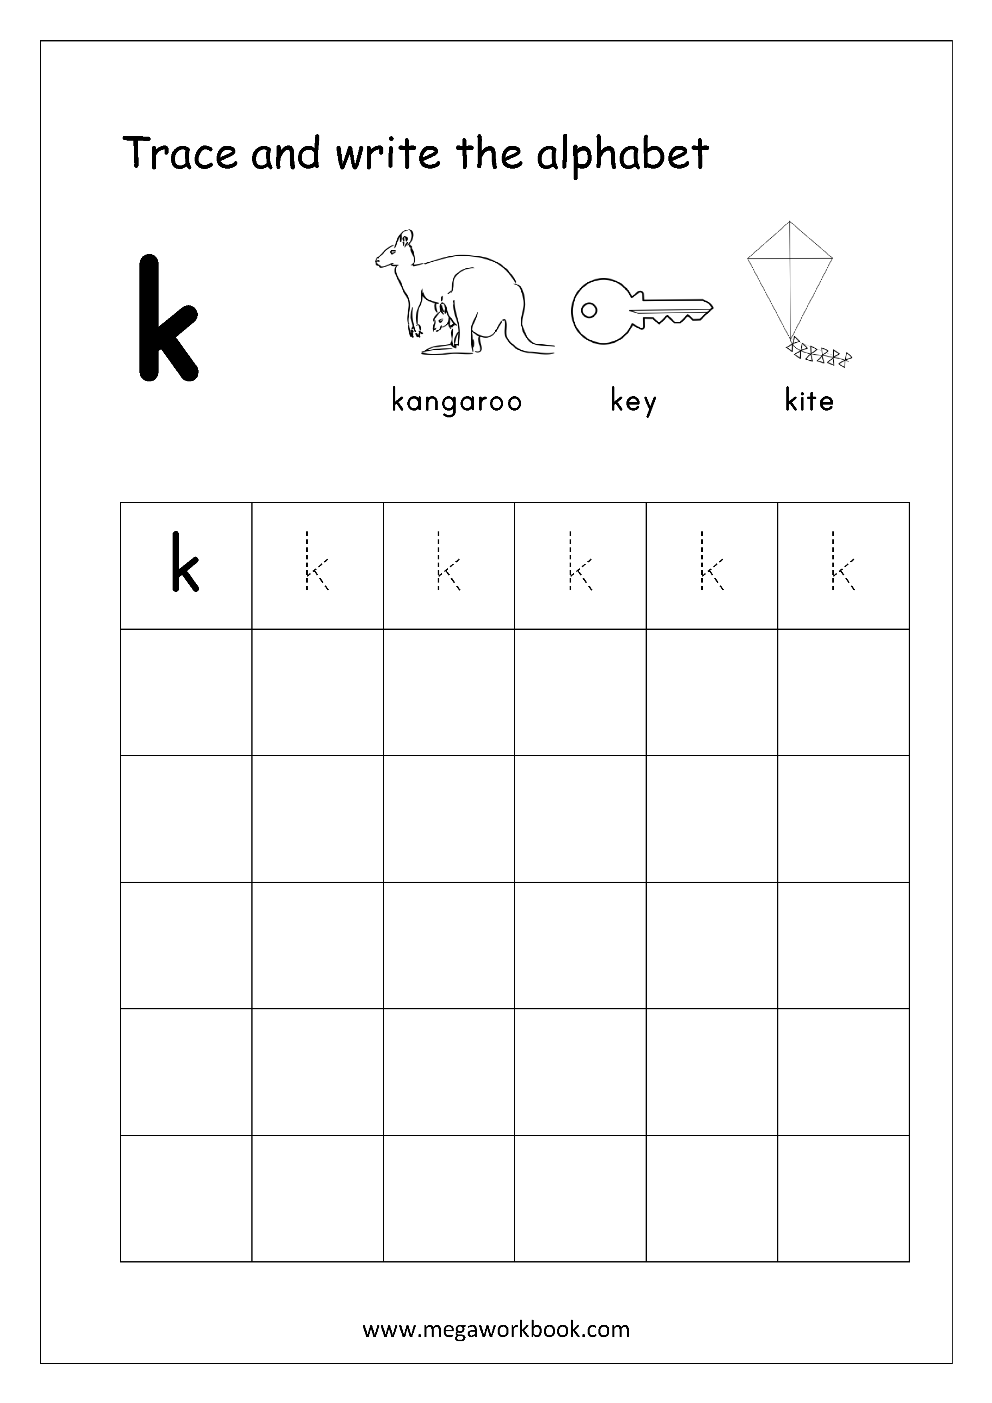 Worksheets Writing The Alphabet Worksheets free english worksheets alphabet writing small letters letter worksheet k